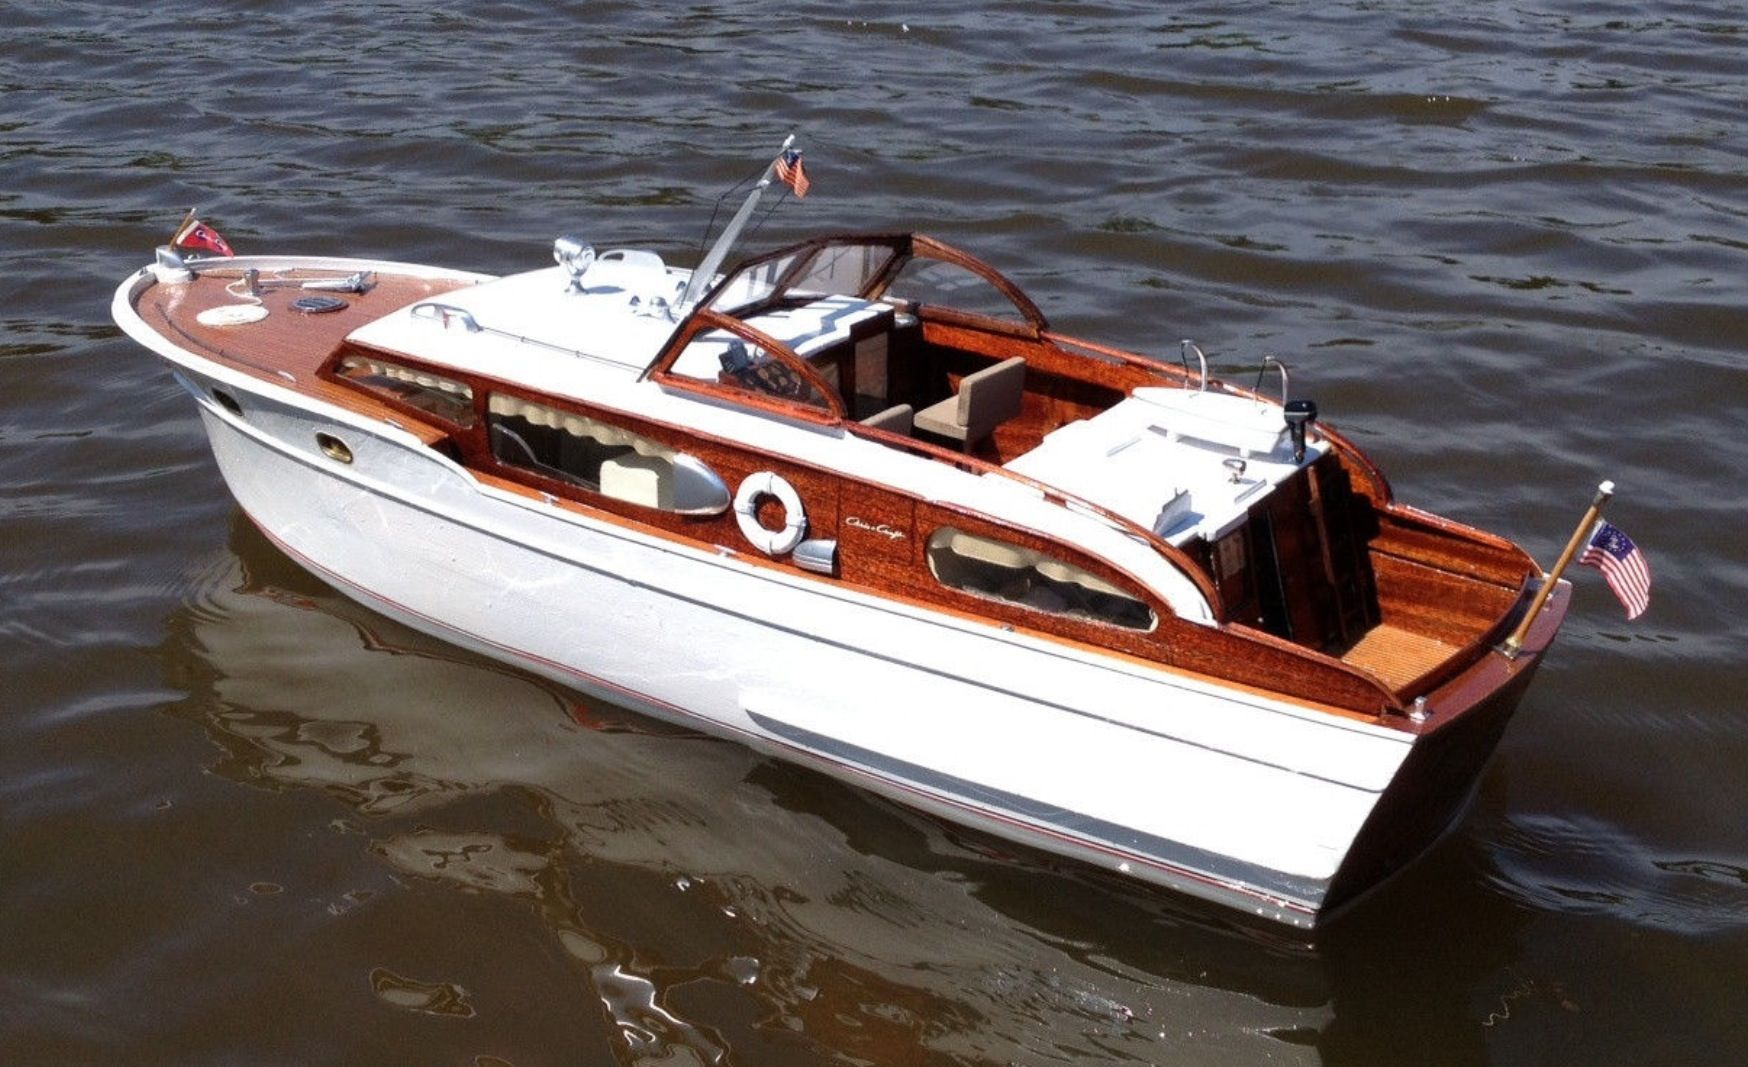 37+ Old chris craft boat models ideas in 2021